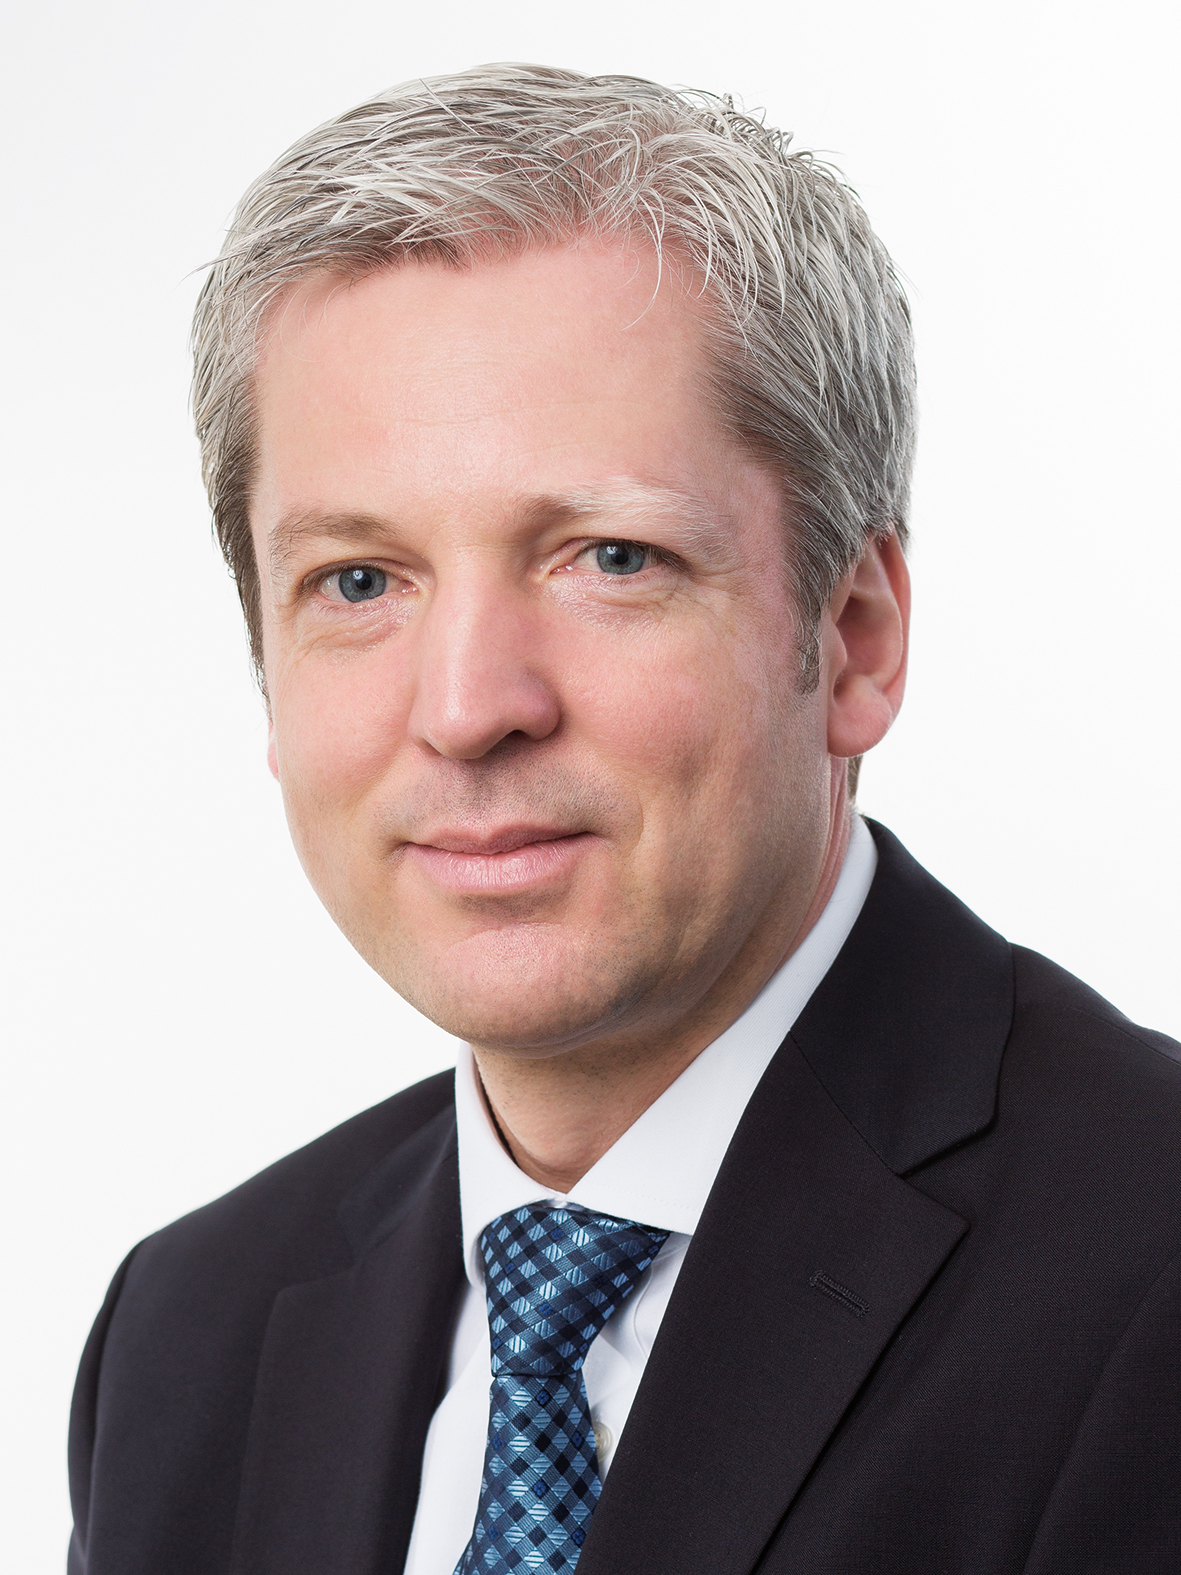 Andreas Schellhammer, CEO at Stoll.